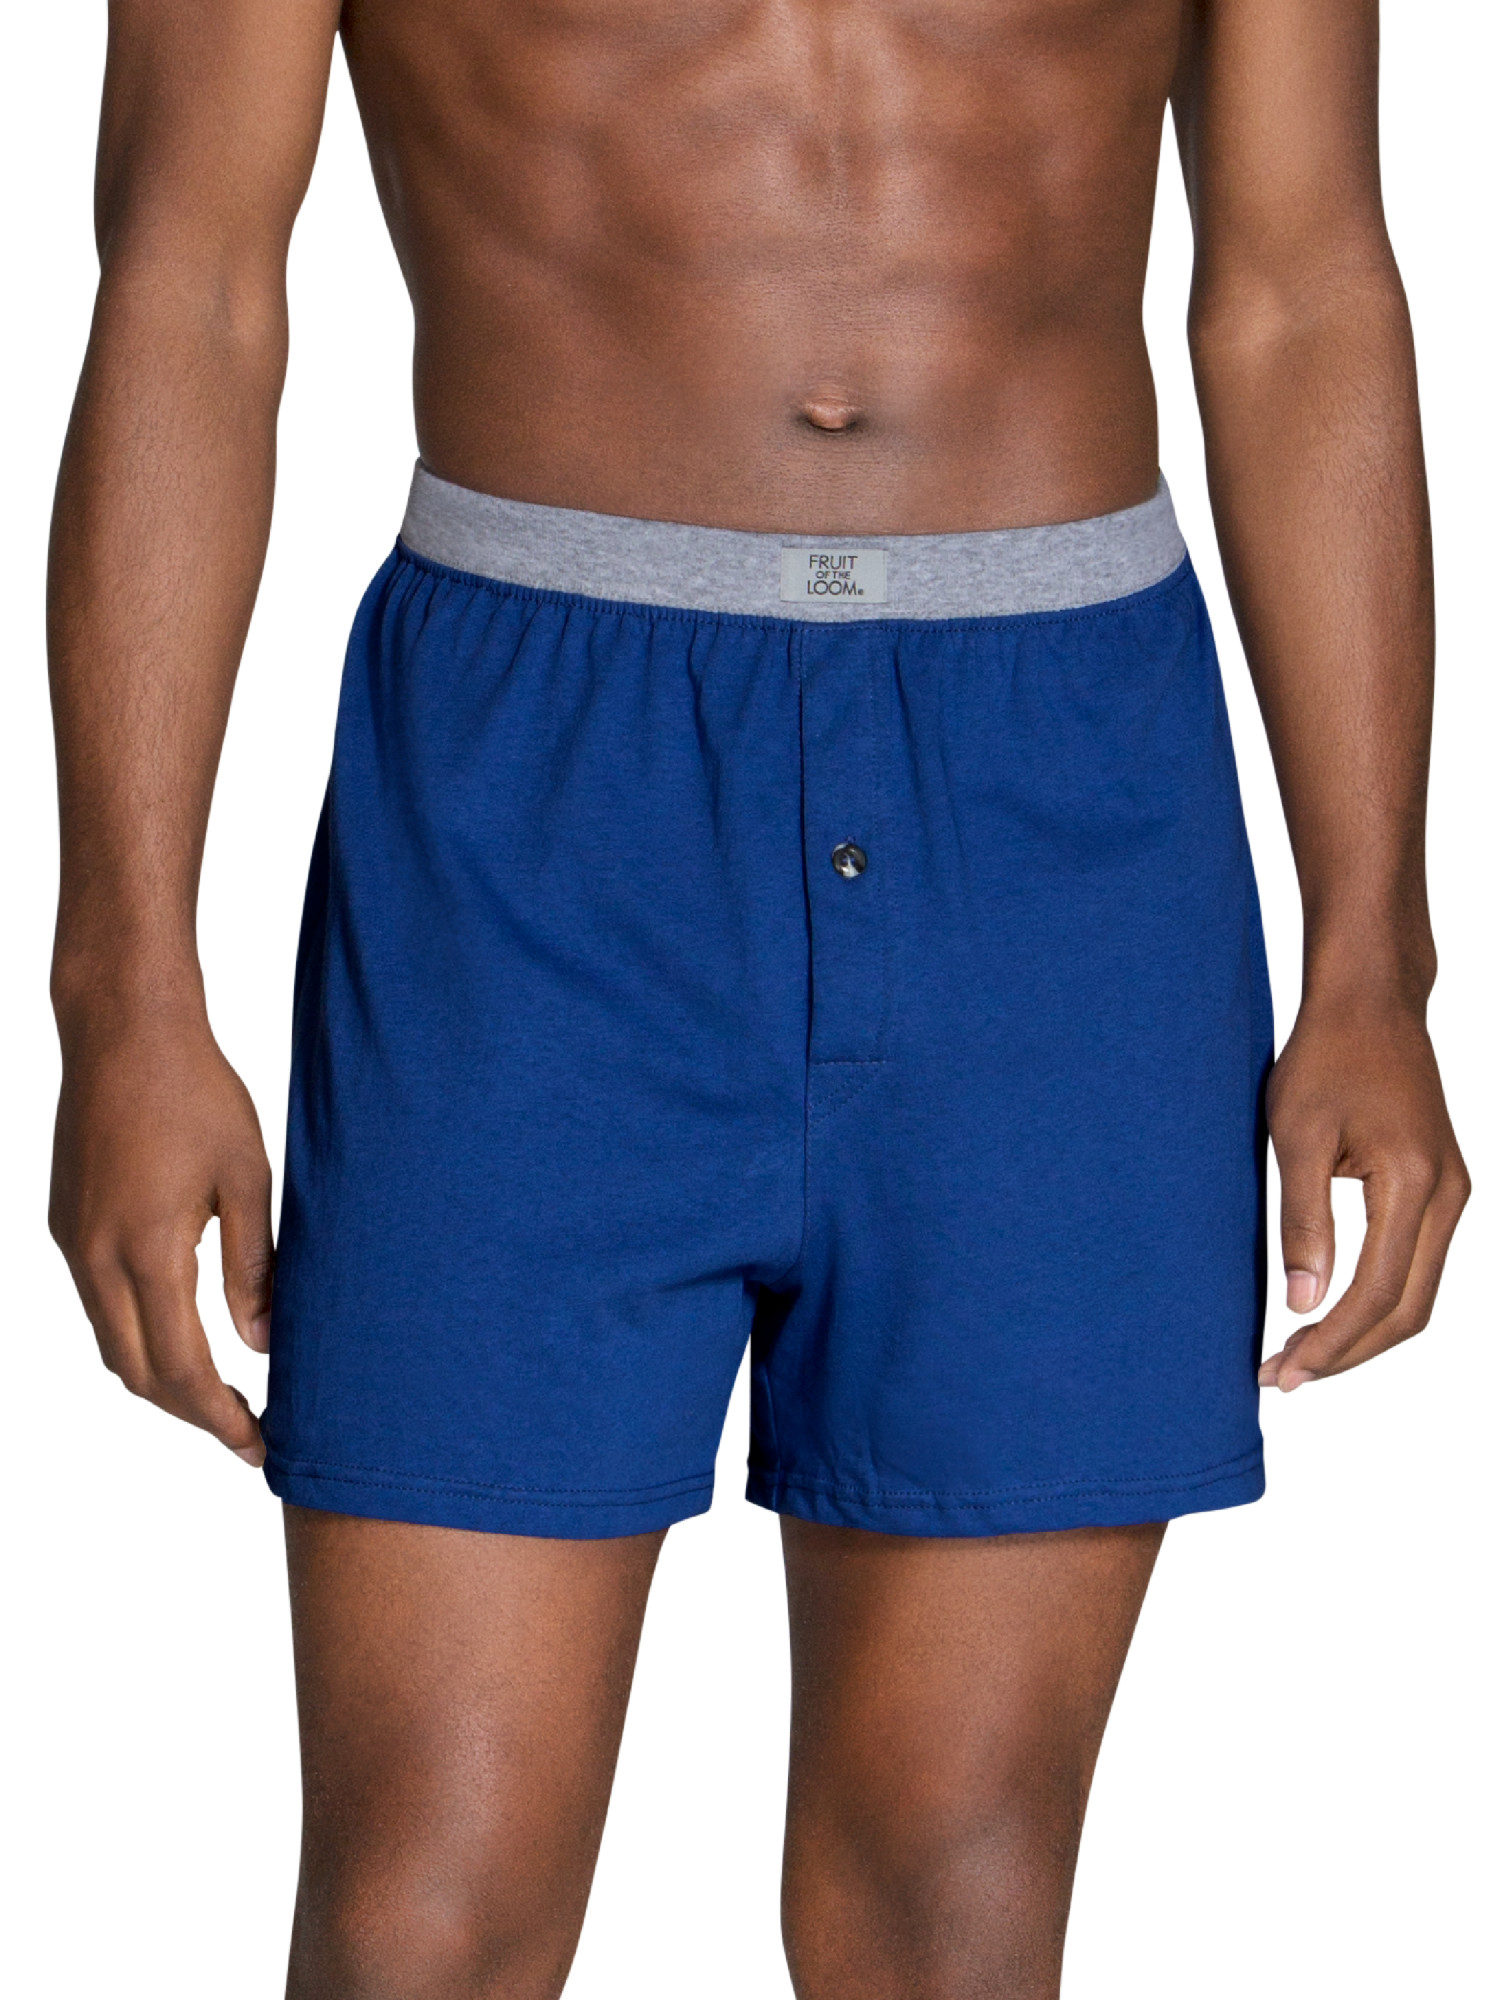 Big Men's Assorted Knit Boxer Extended Sizes, 4 Pack